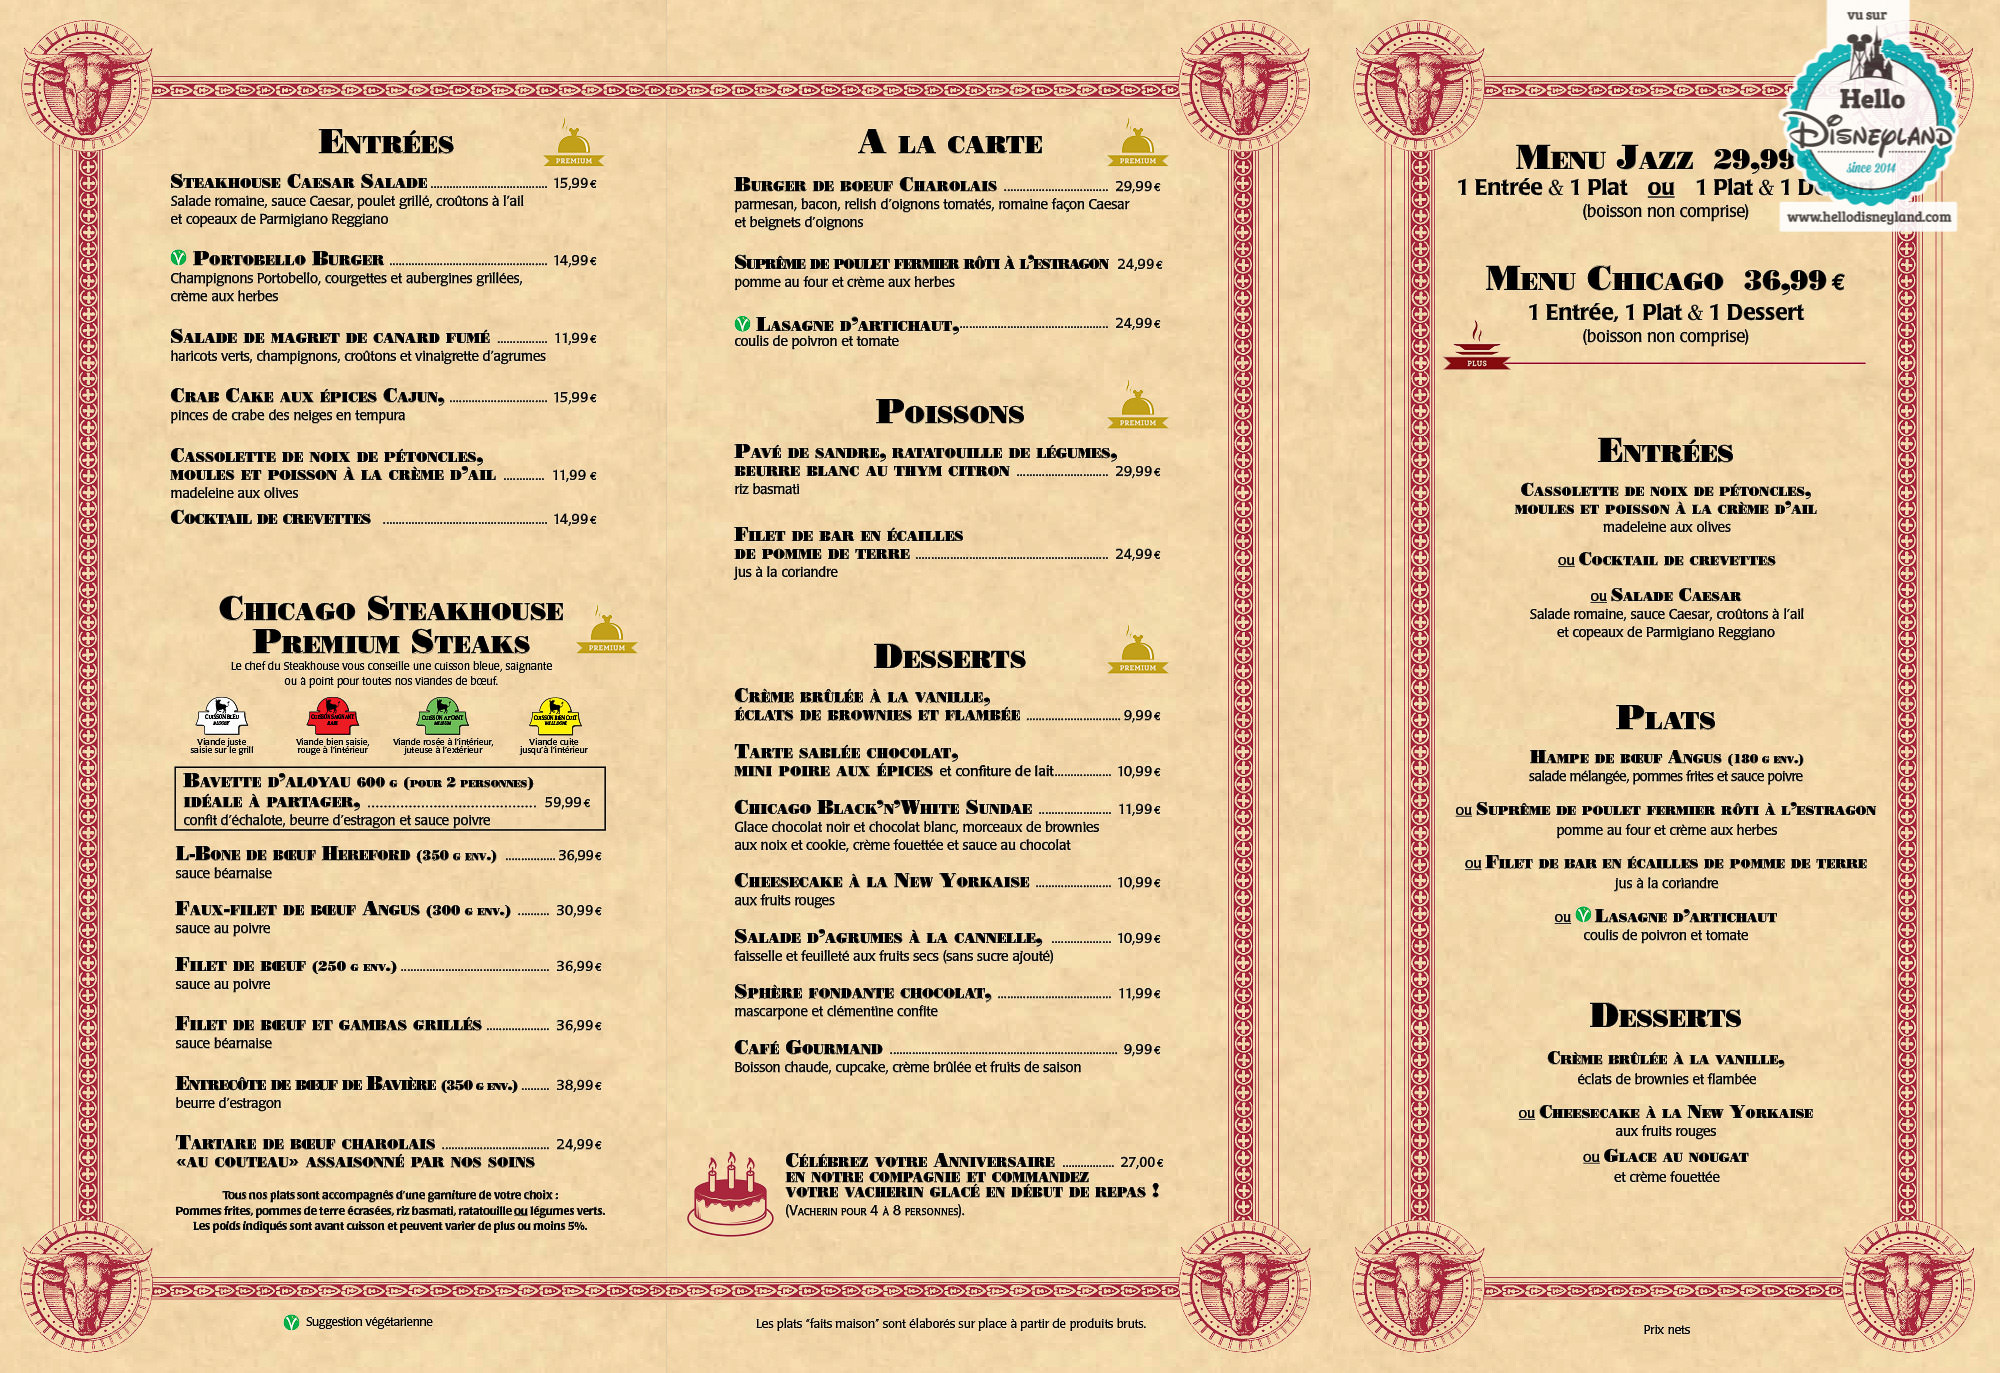 Restaurant Des Stars Disney Menu